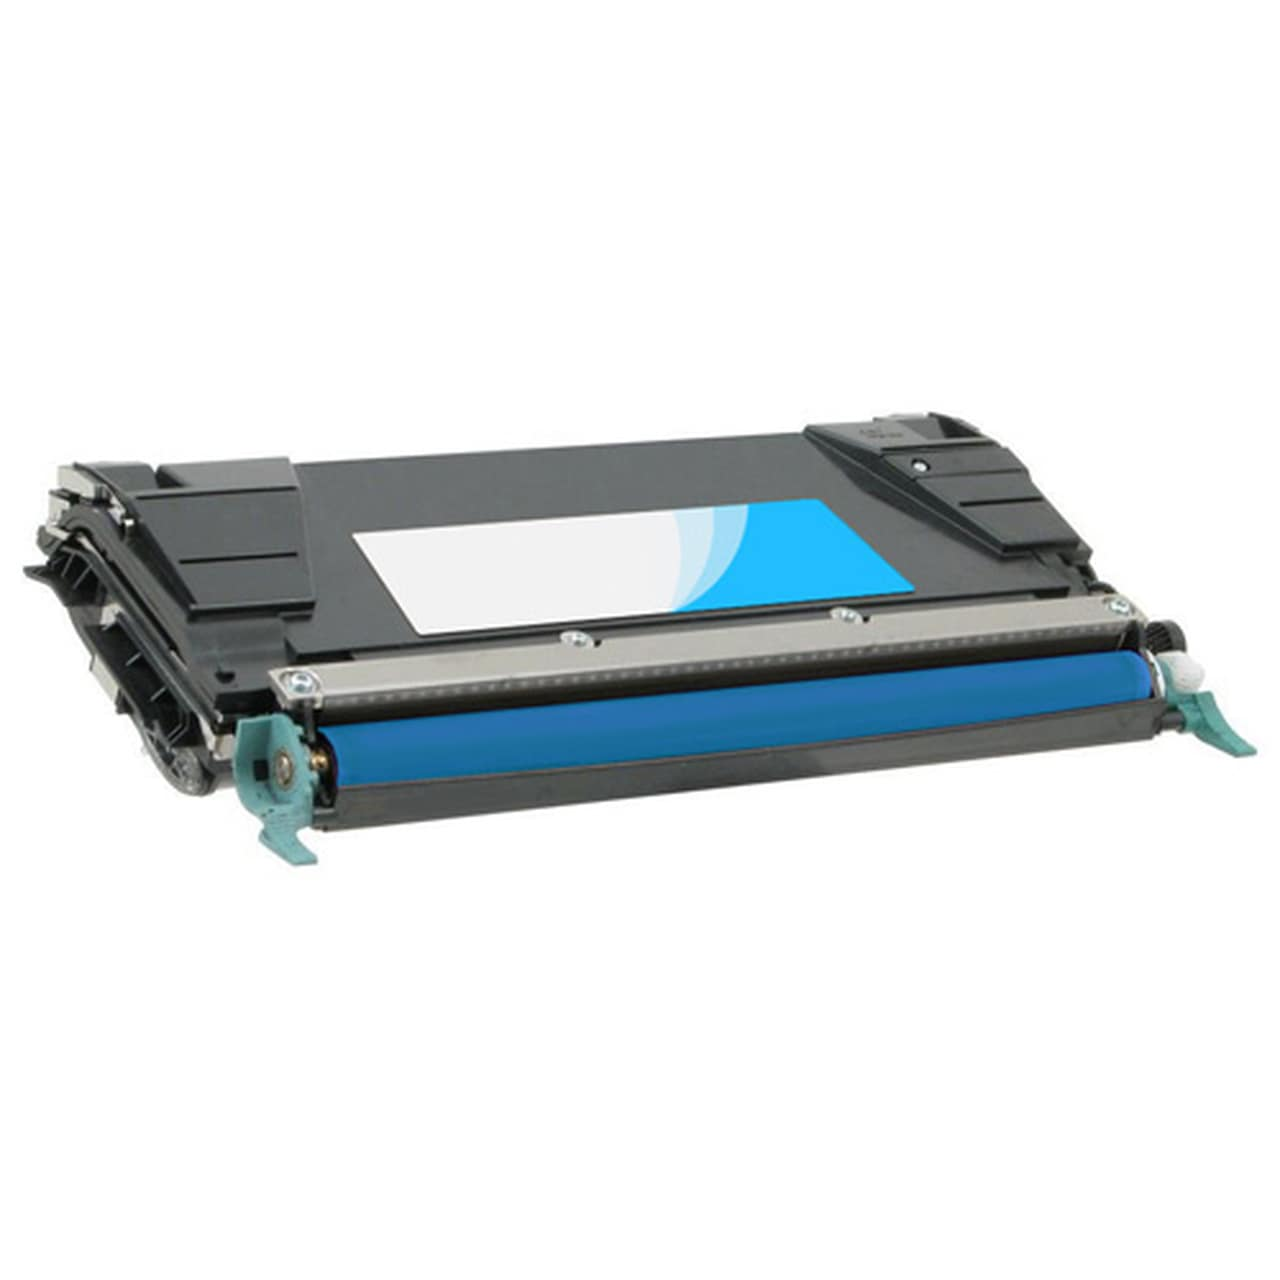 C5240CH Toner Cartridge - Lexmark Remanufactured (Cyan)